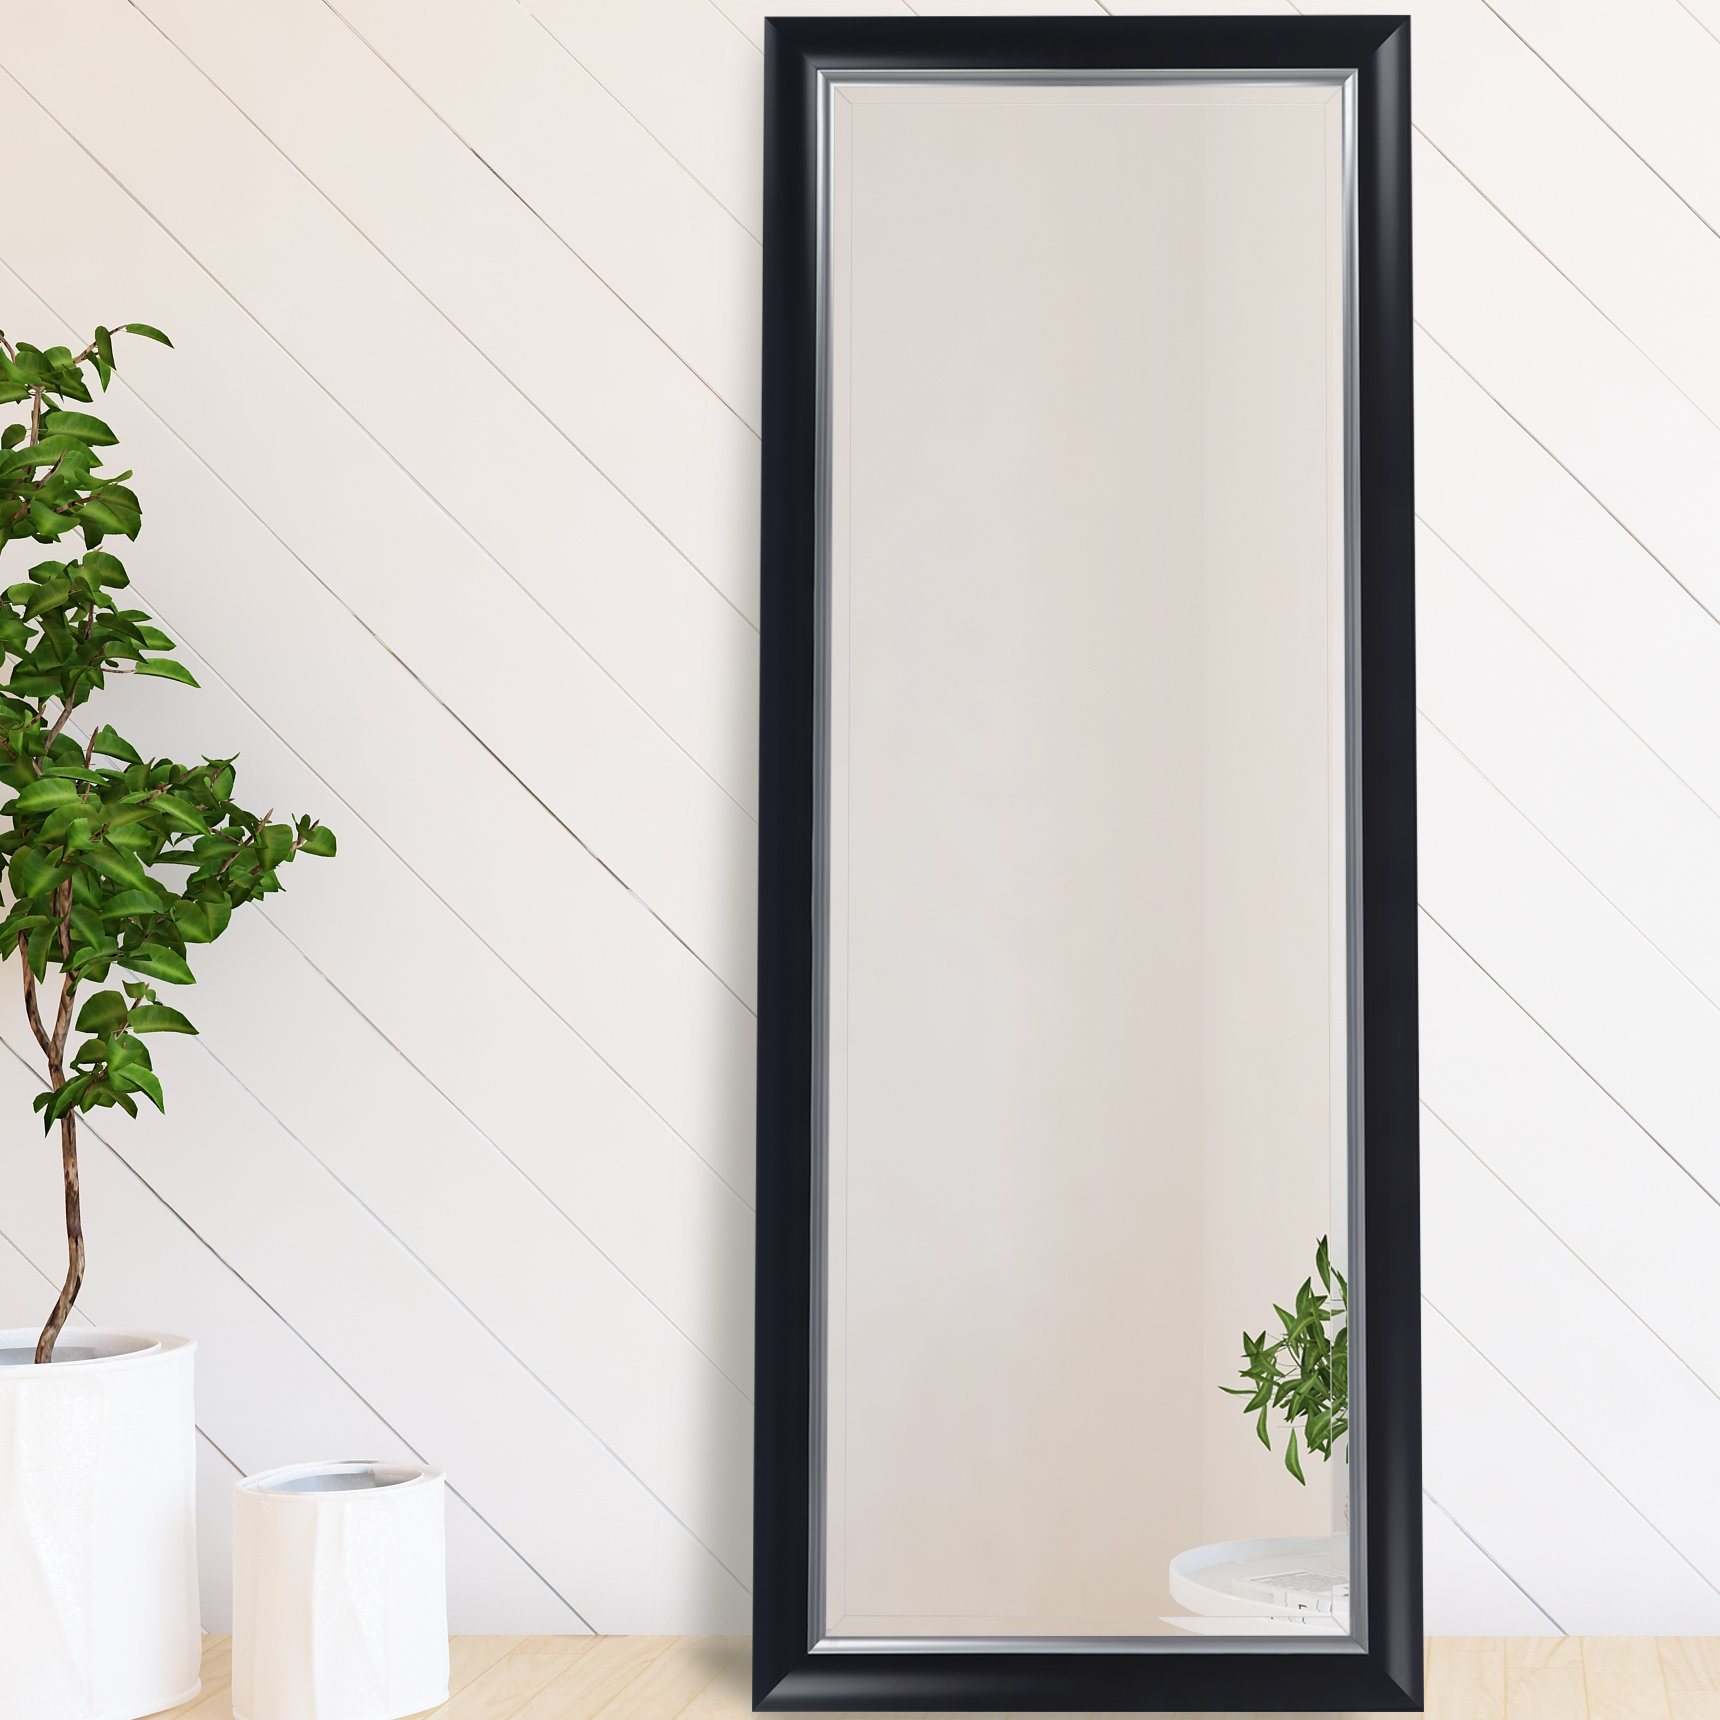 Henriqueta Scoop Framed Beveled Full Length Mirror With Regard To Dedrick Decorative Framed Modern And Contemporary Wall Mirrors (View 15 of 20)